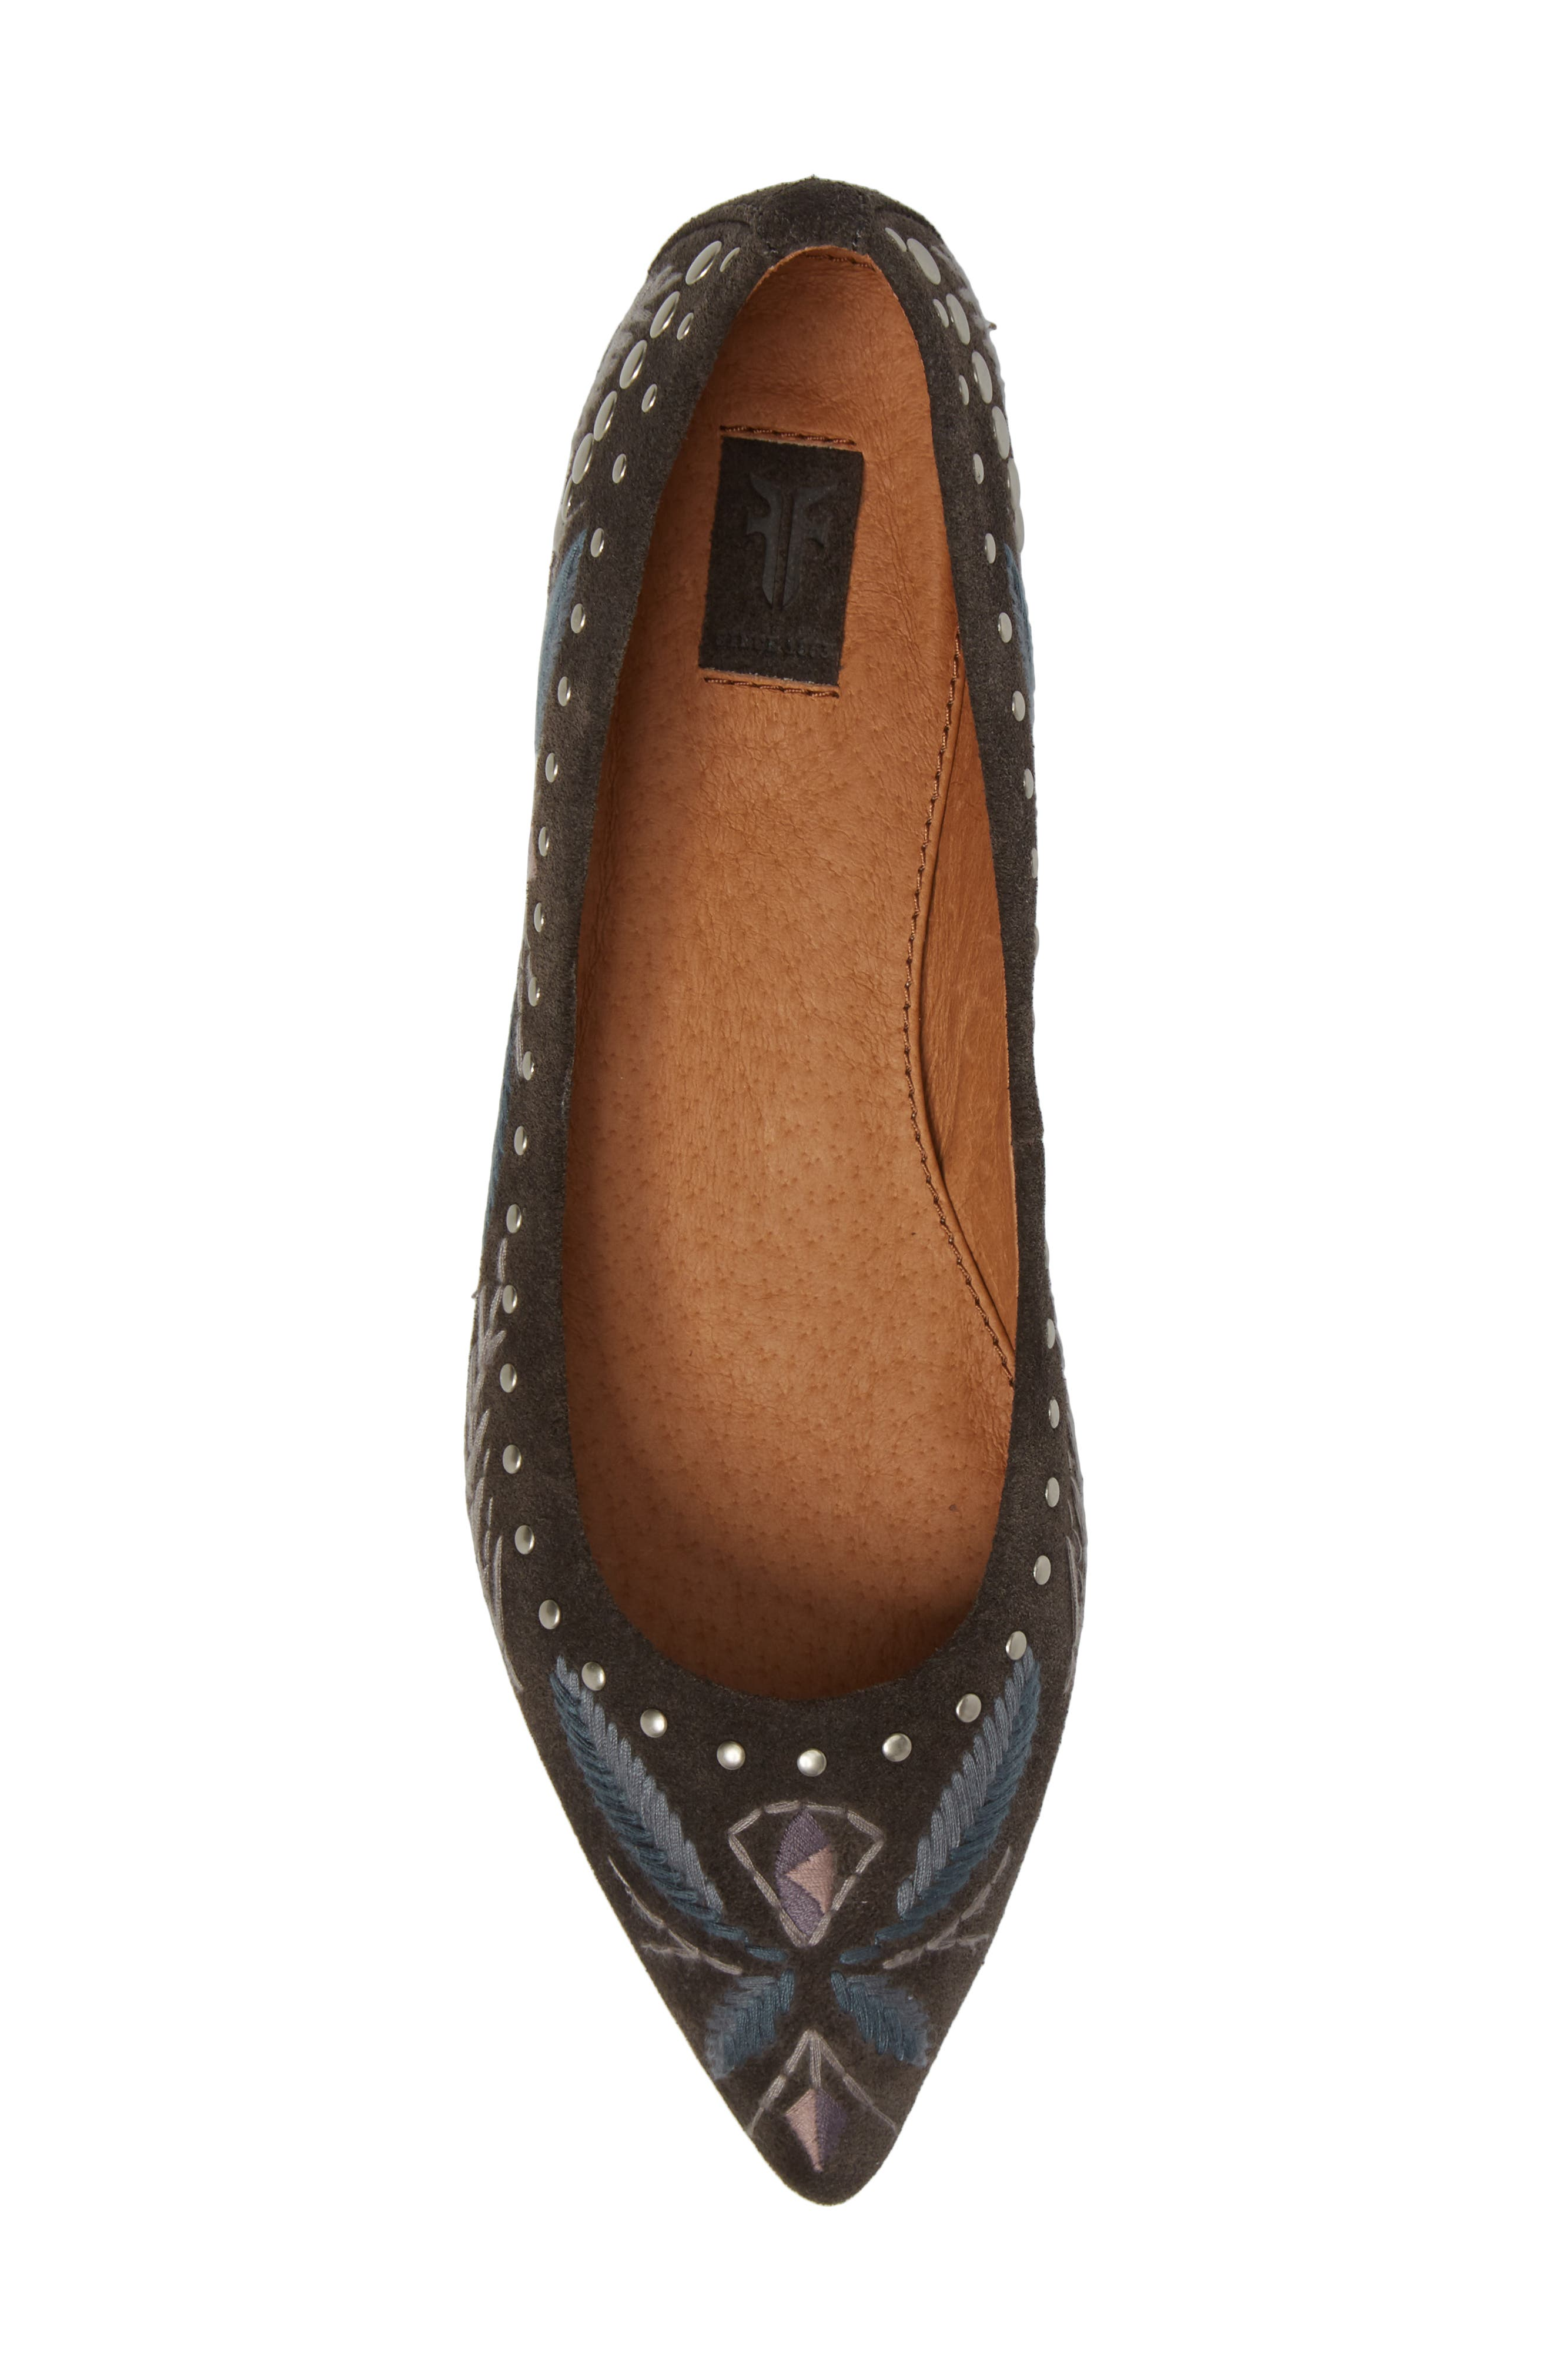 Sienna Embroidered Ballet Flat,                             Alternate thumbnail 5, color,                             030